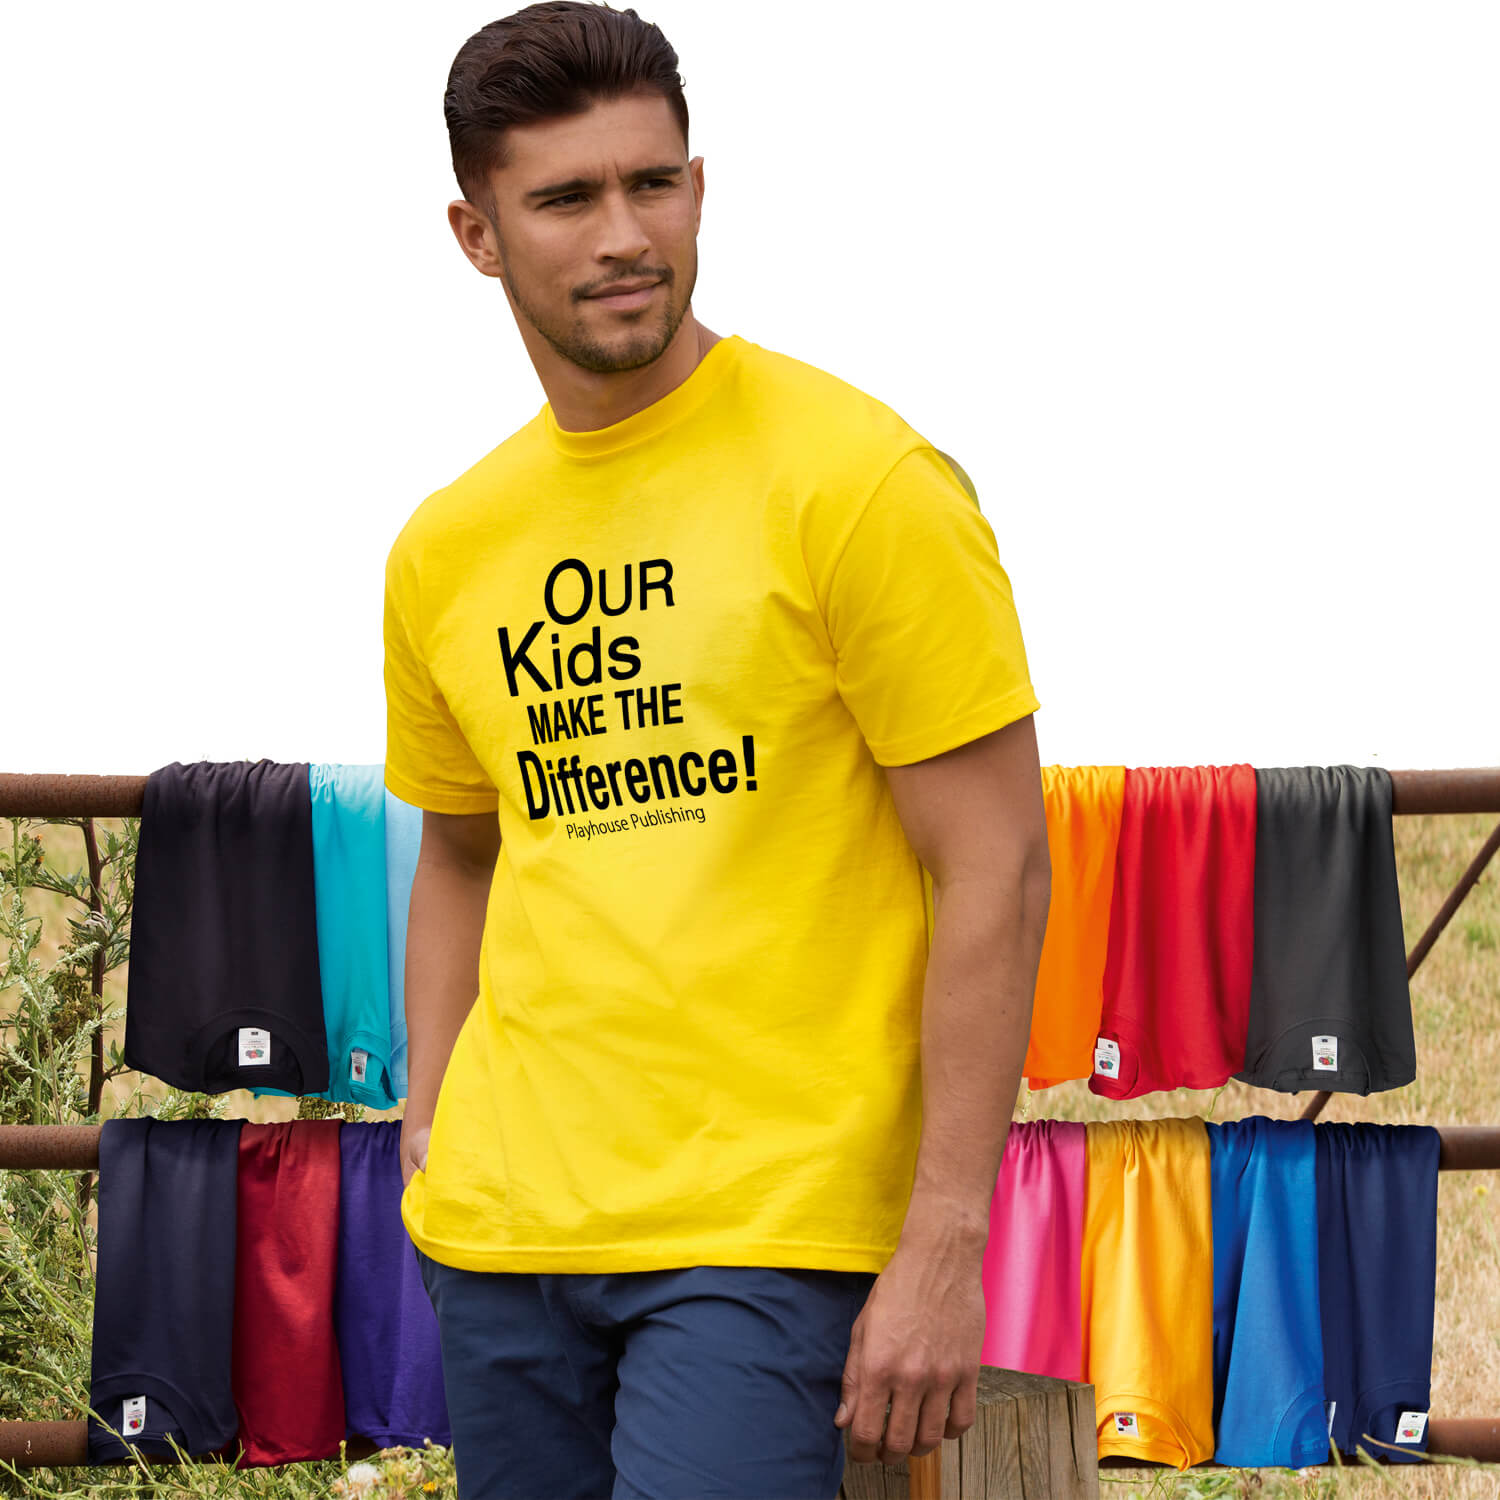 Fruit of the Loom Promotional T Shirt